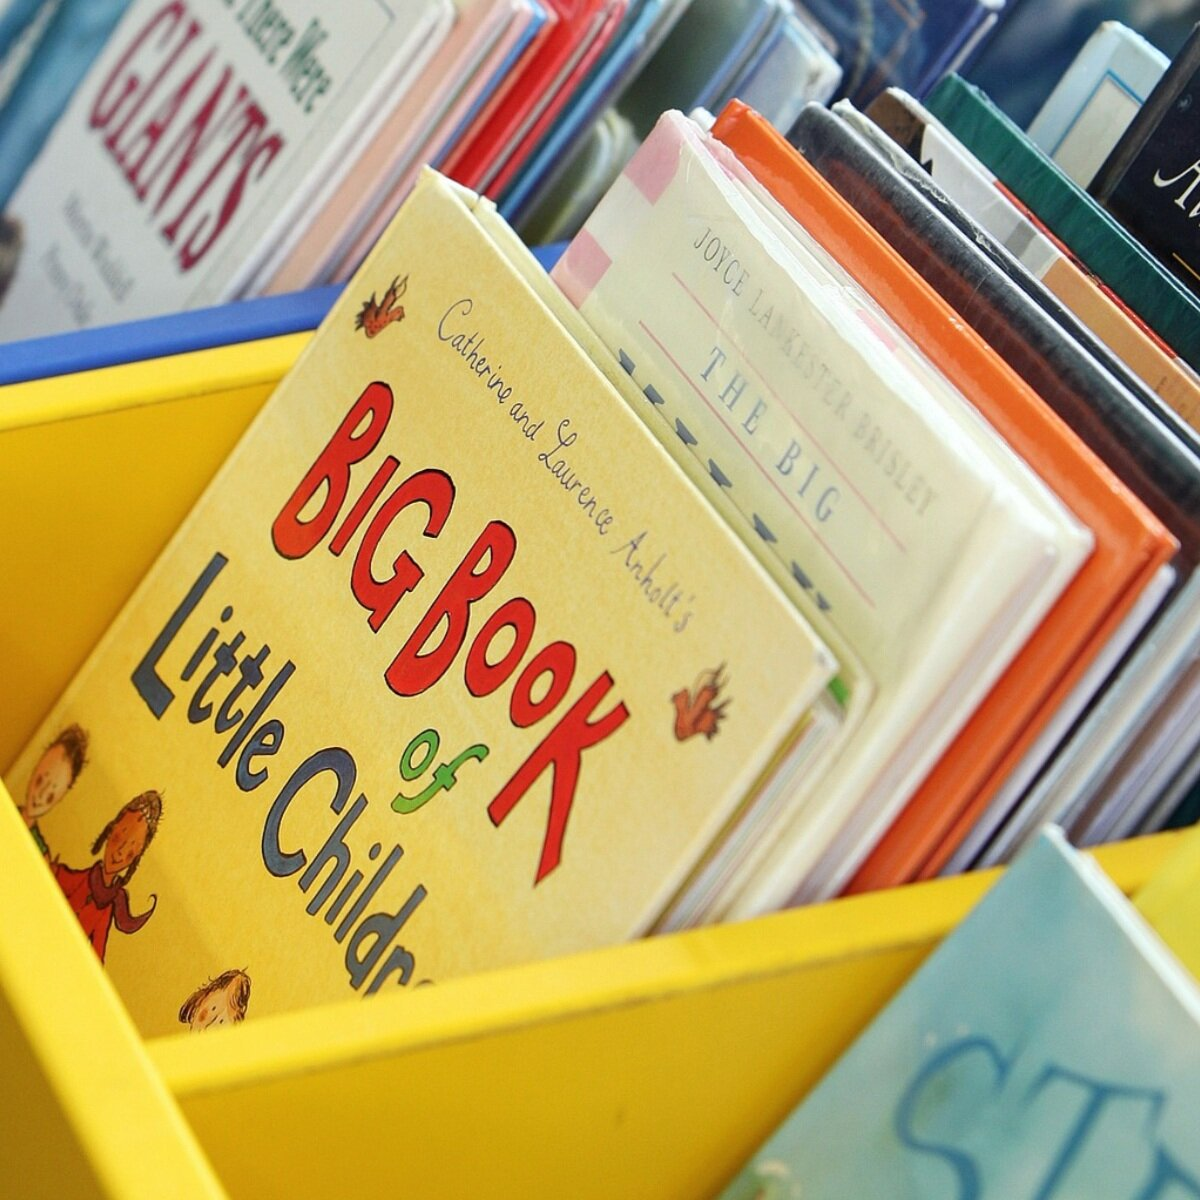 sTORY hoUR - Open to children 0-5 years of age